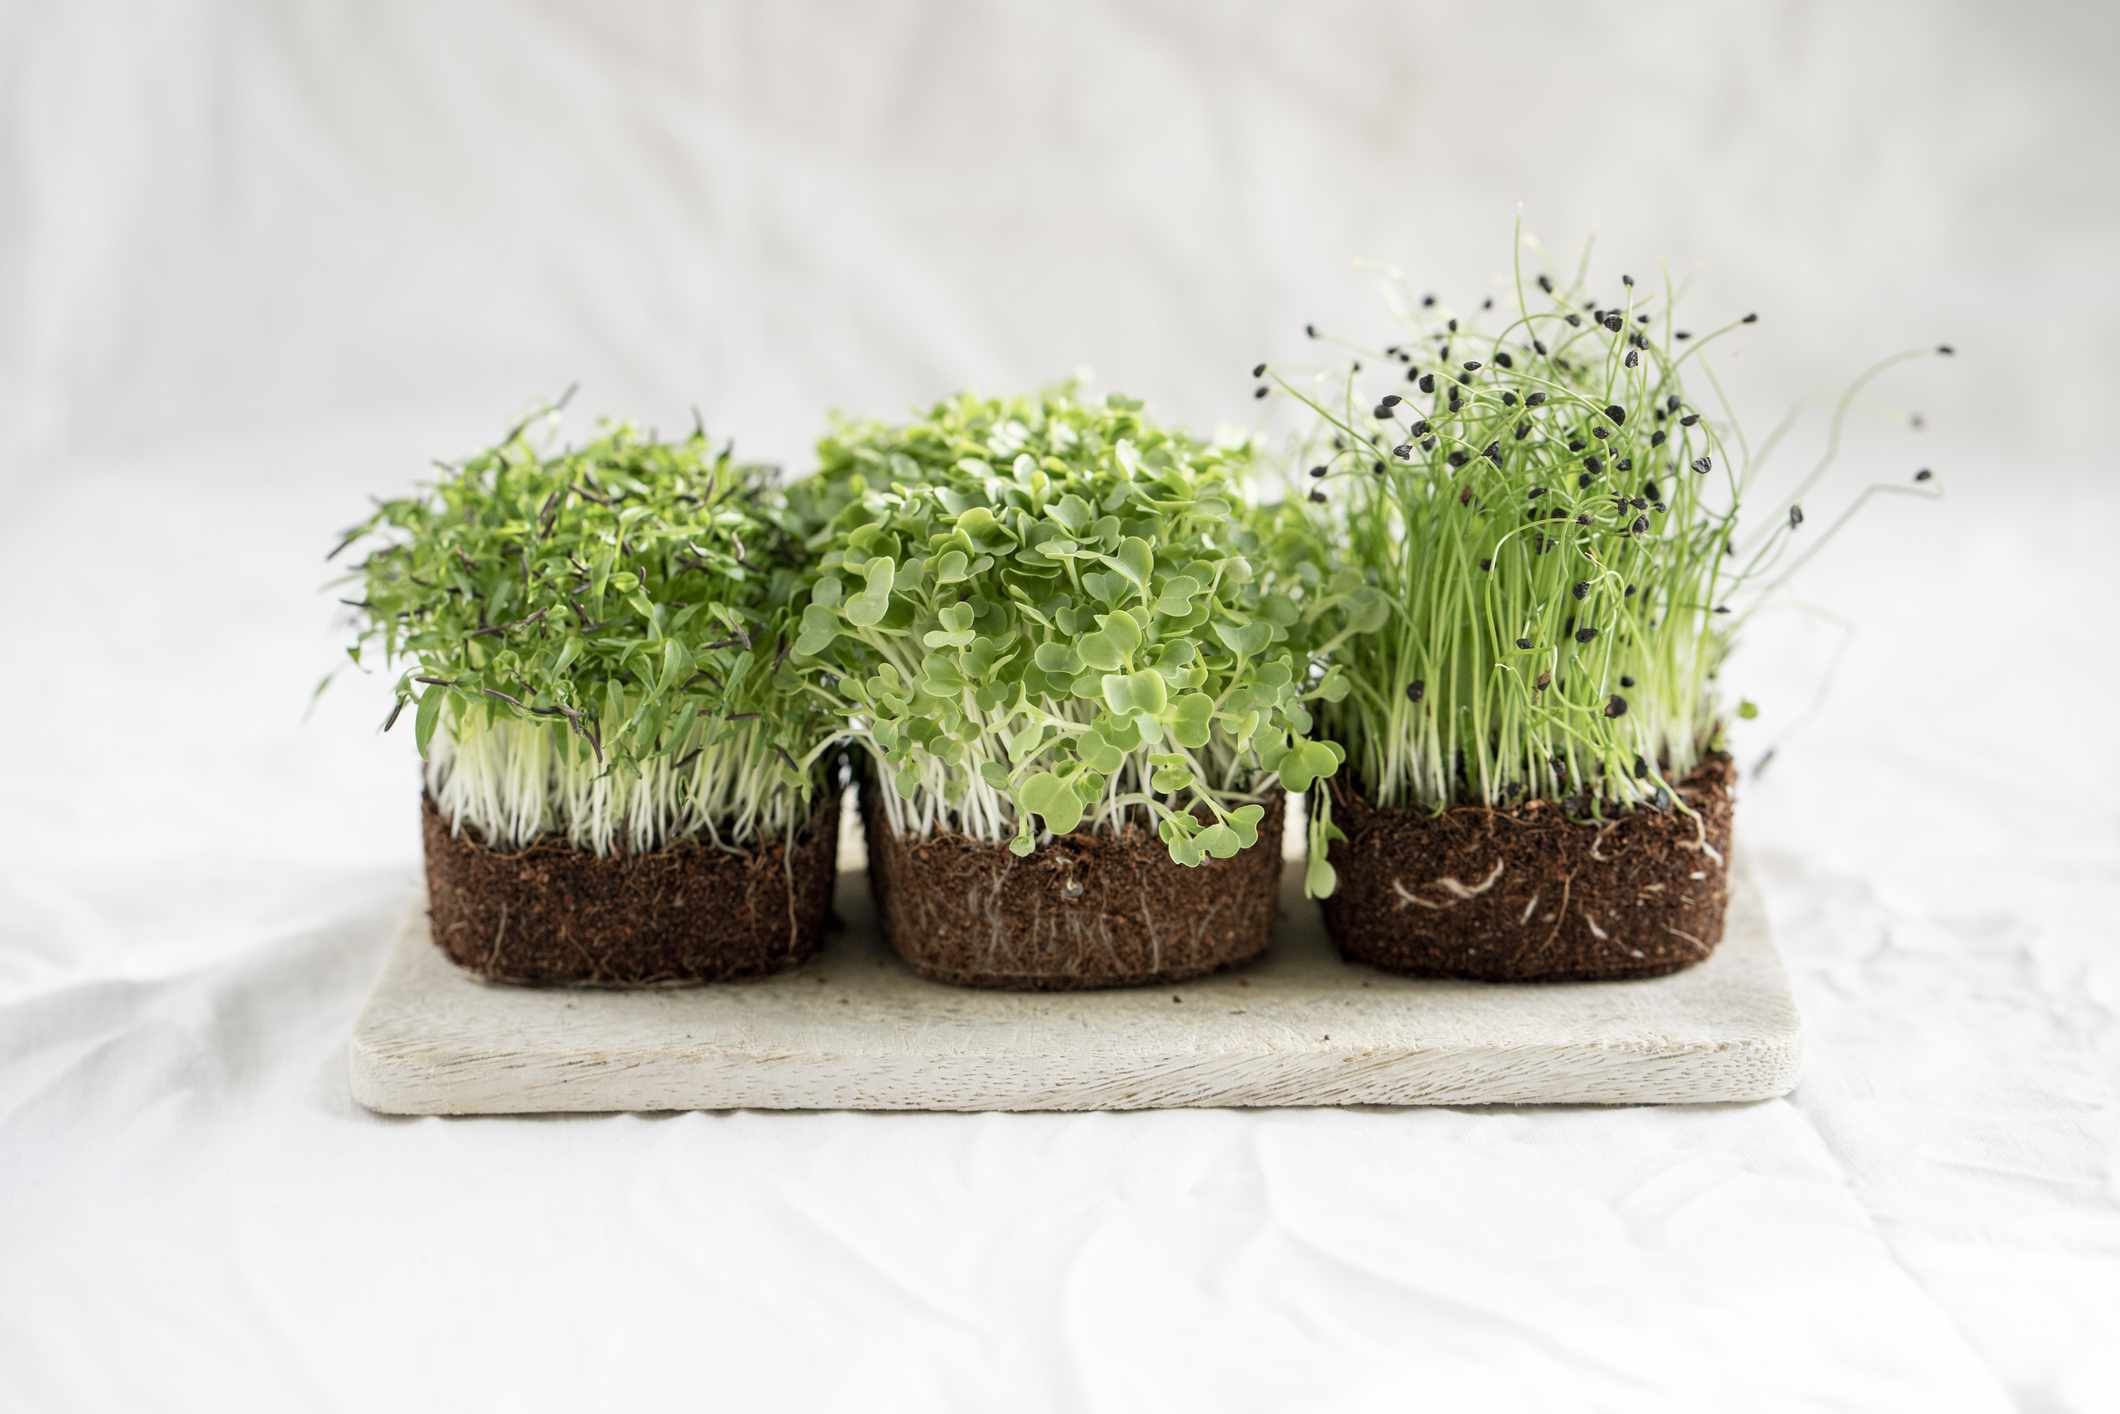 three clumps of microgreens growing in soil without pots on white background